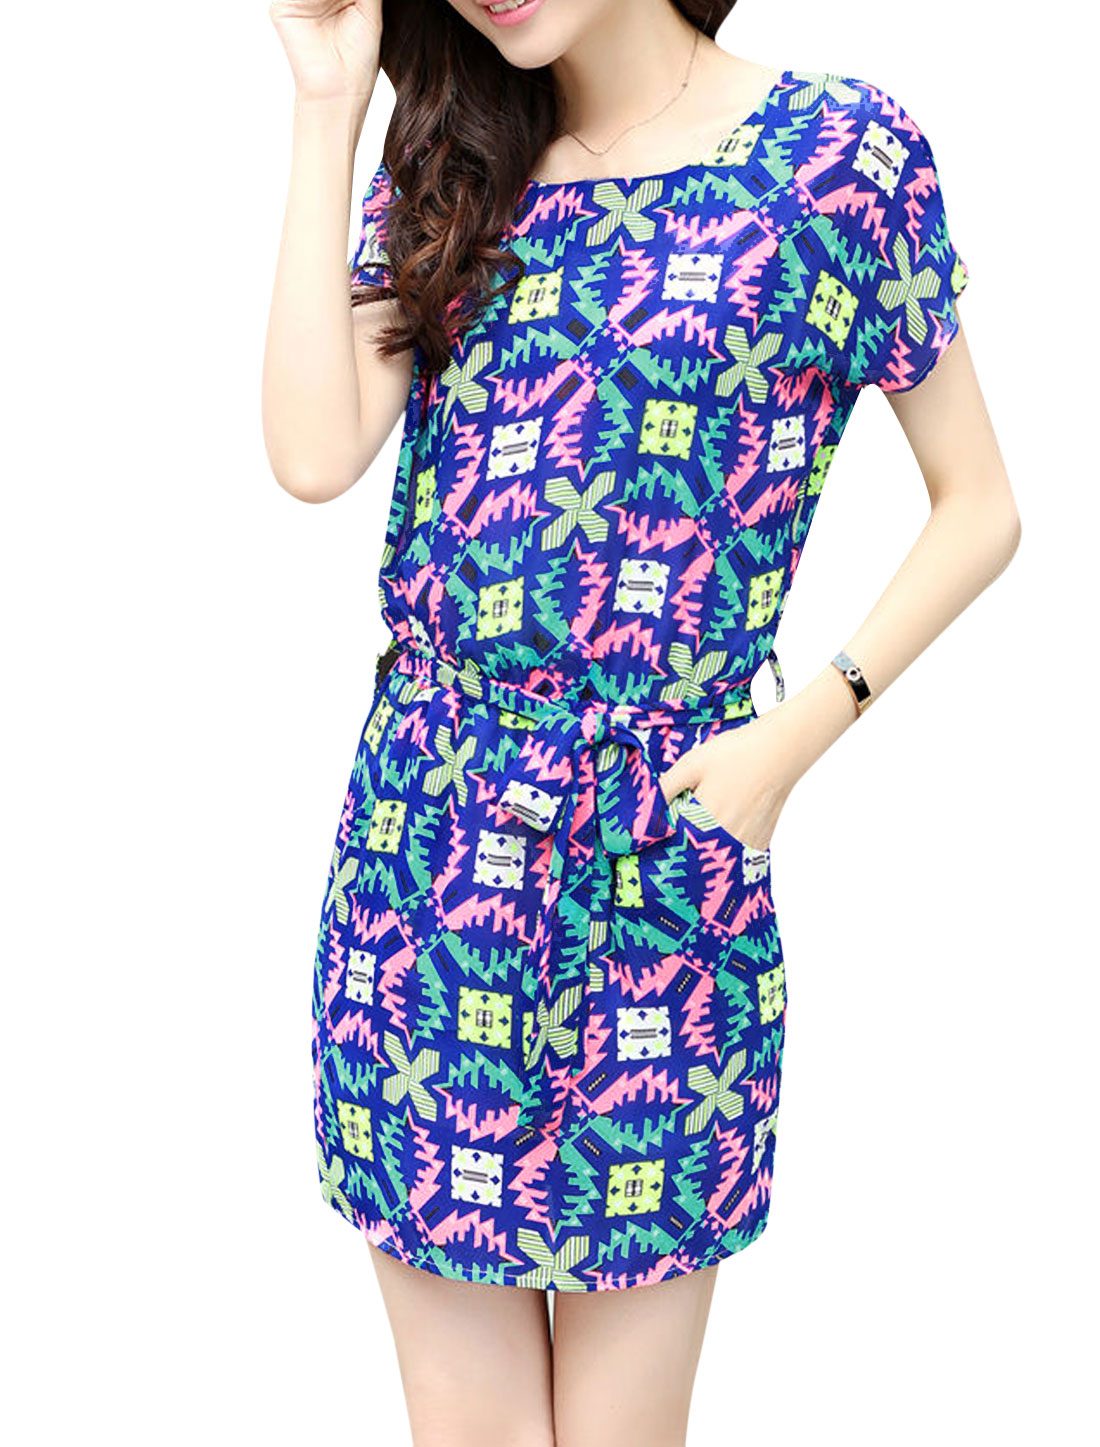 Women Short Batwing Sleeve Geometric Prints Chiffon Dress Royal Blue Green M